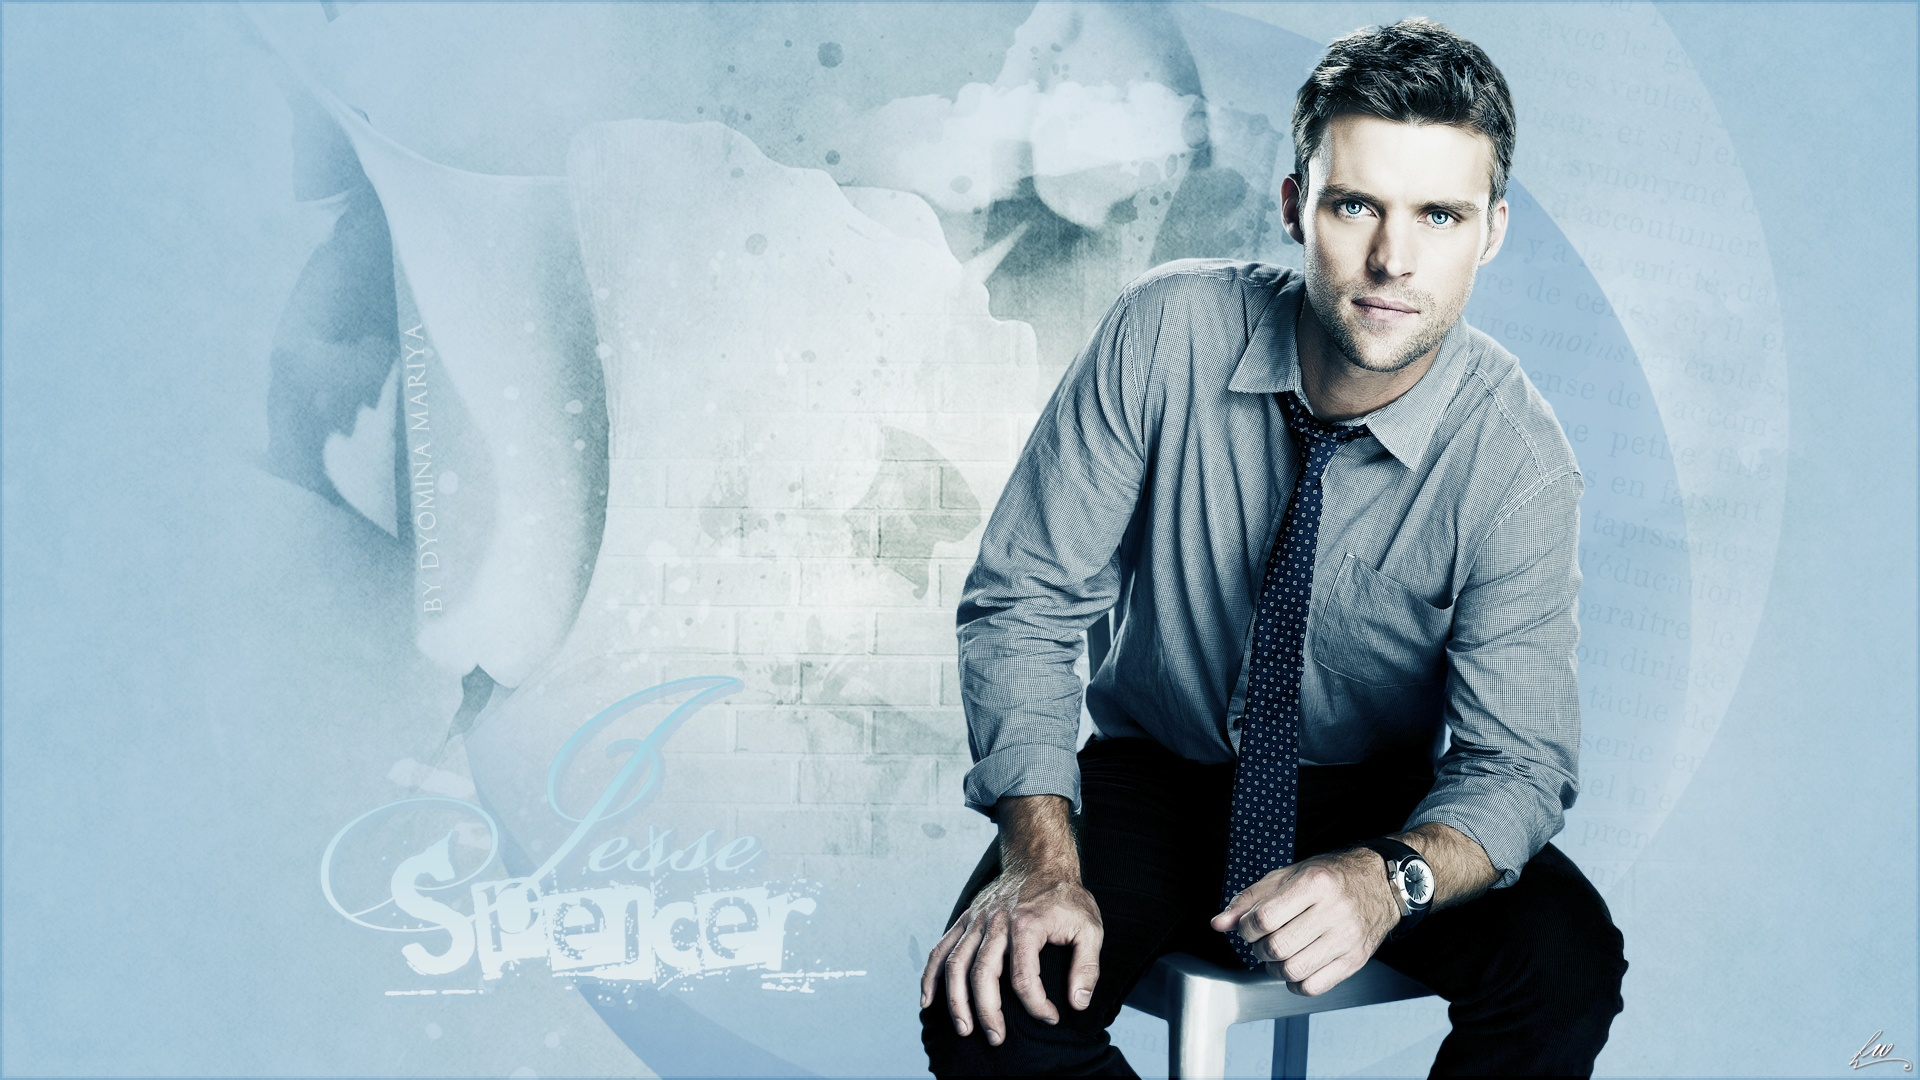 1920x1080 - Jesse Spencer Wallpapers 5